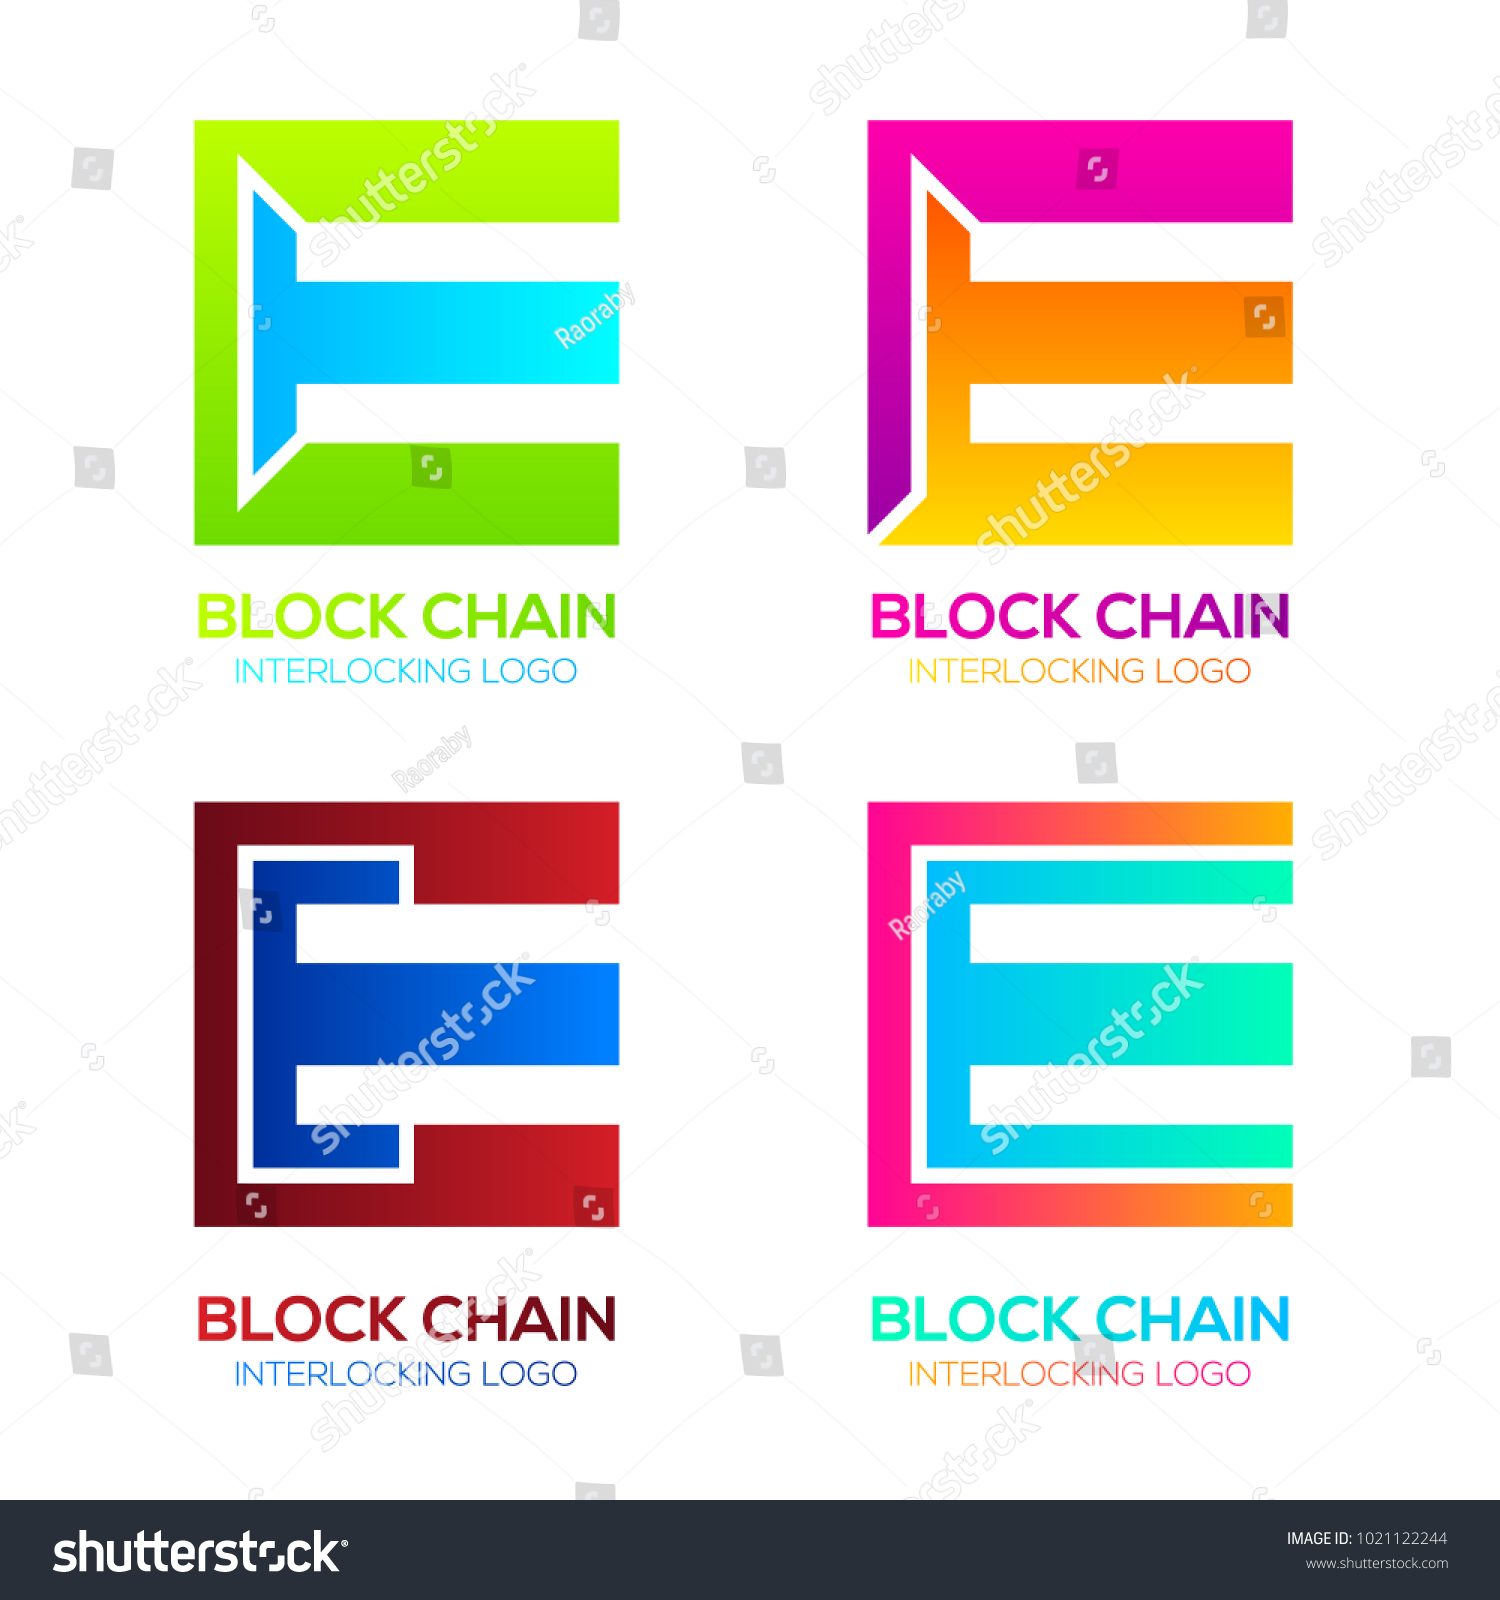 Letter E Logos Colorful Shape Blockchain Stock Vector